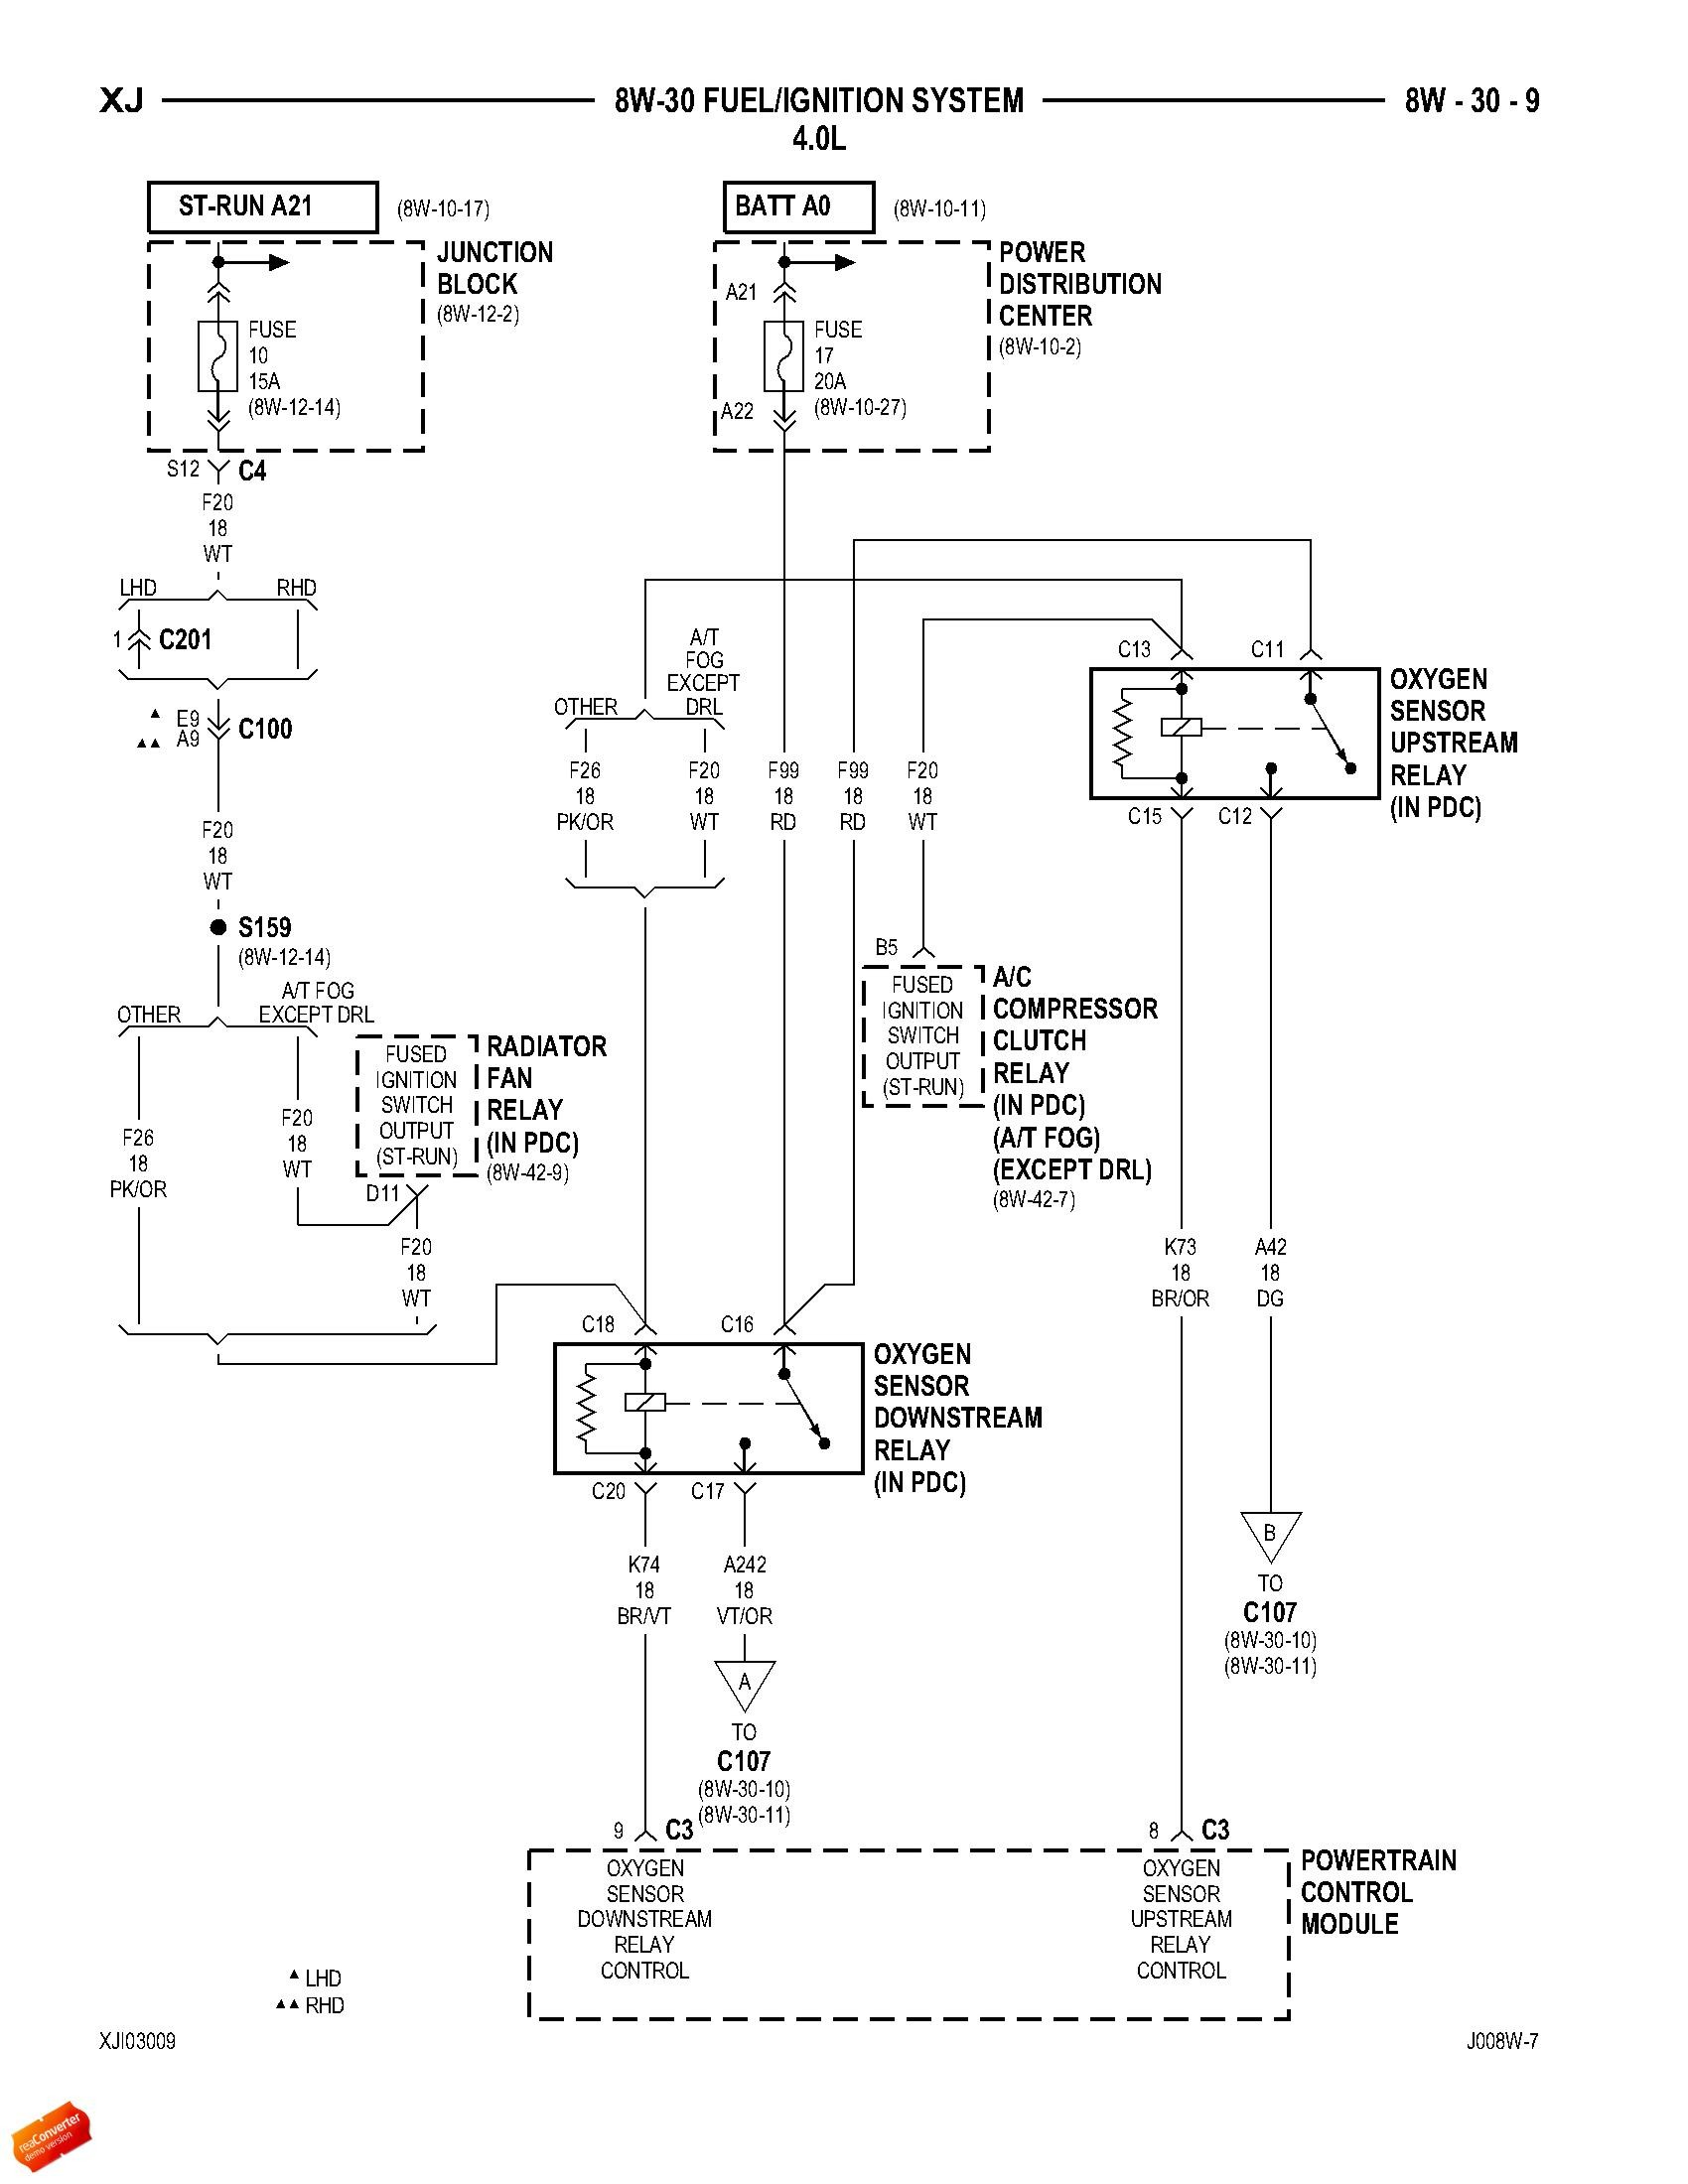 Cooling Fan Wiring Diagram 2002 Jeep Liberty Diagram] Dash Wiring Diagram 2002 Jeep Full Version Hd Of Cooling Fan Wiring Diagram 2002 Jeep Liberty